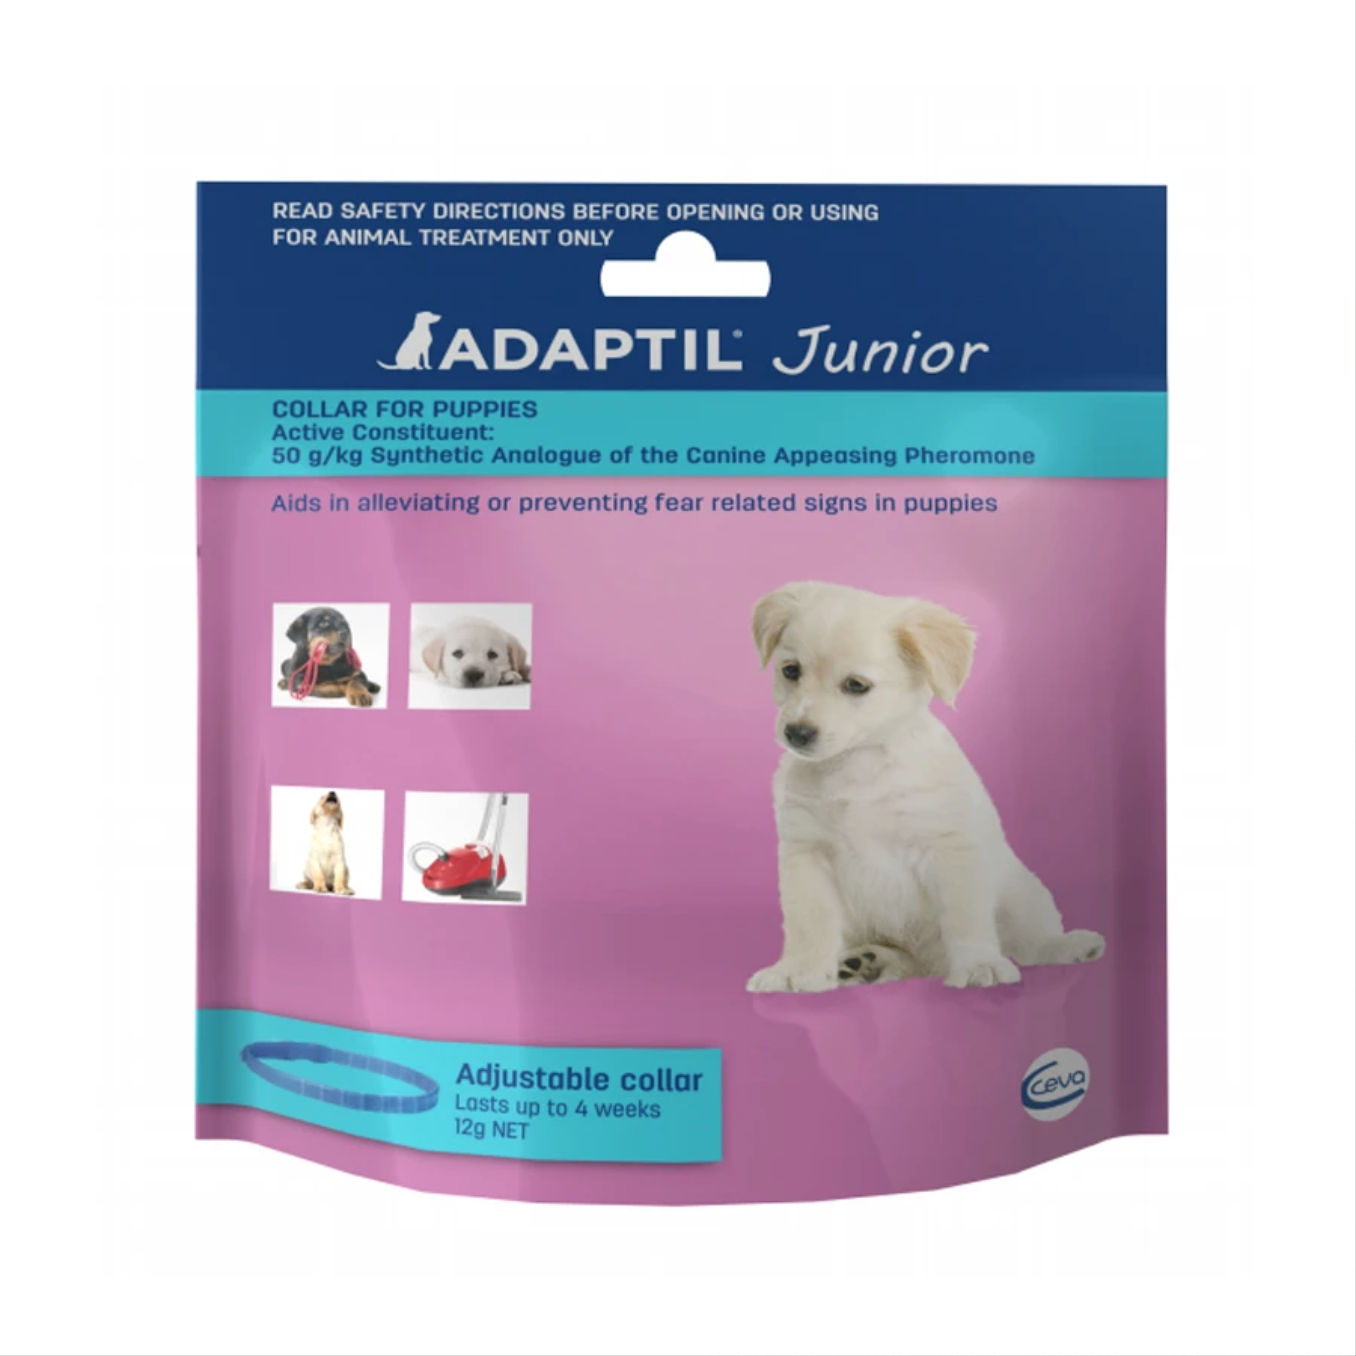 Adaptil Junior Adjustable Collar